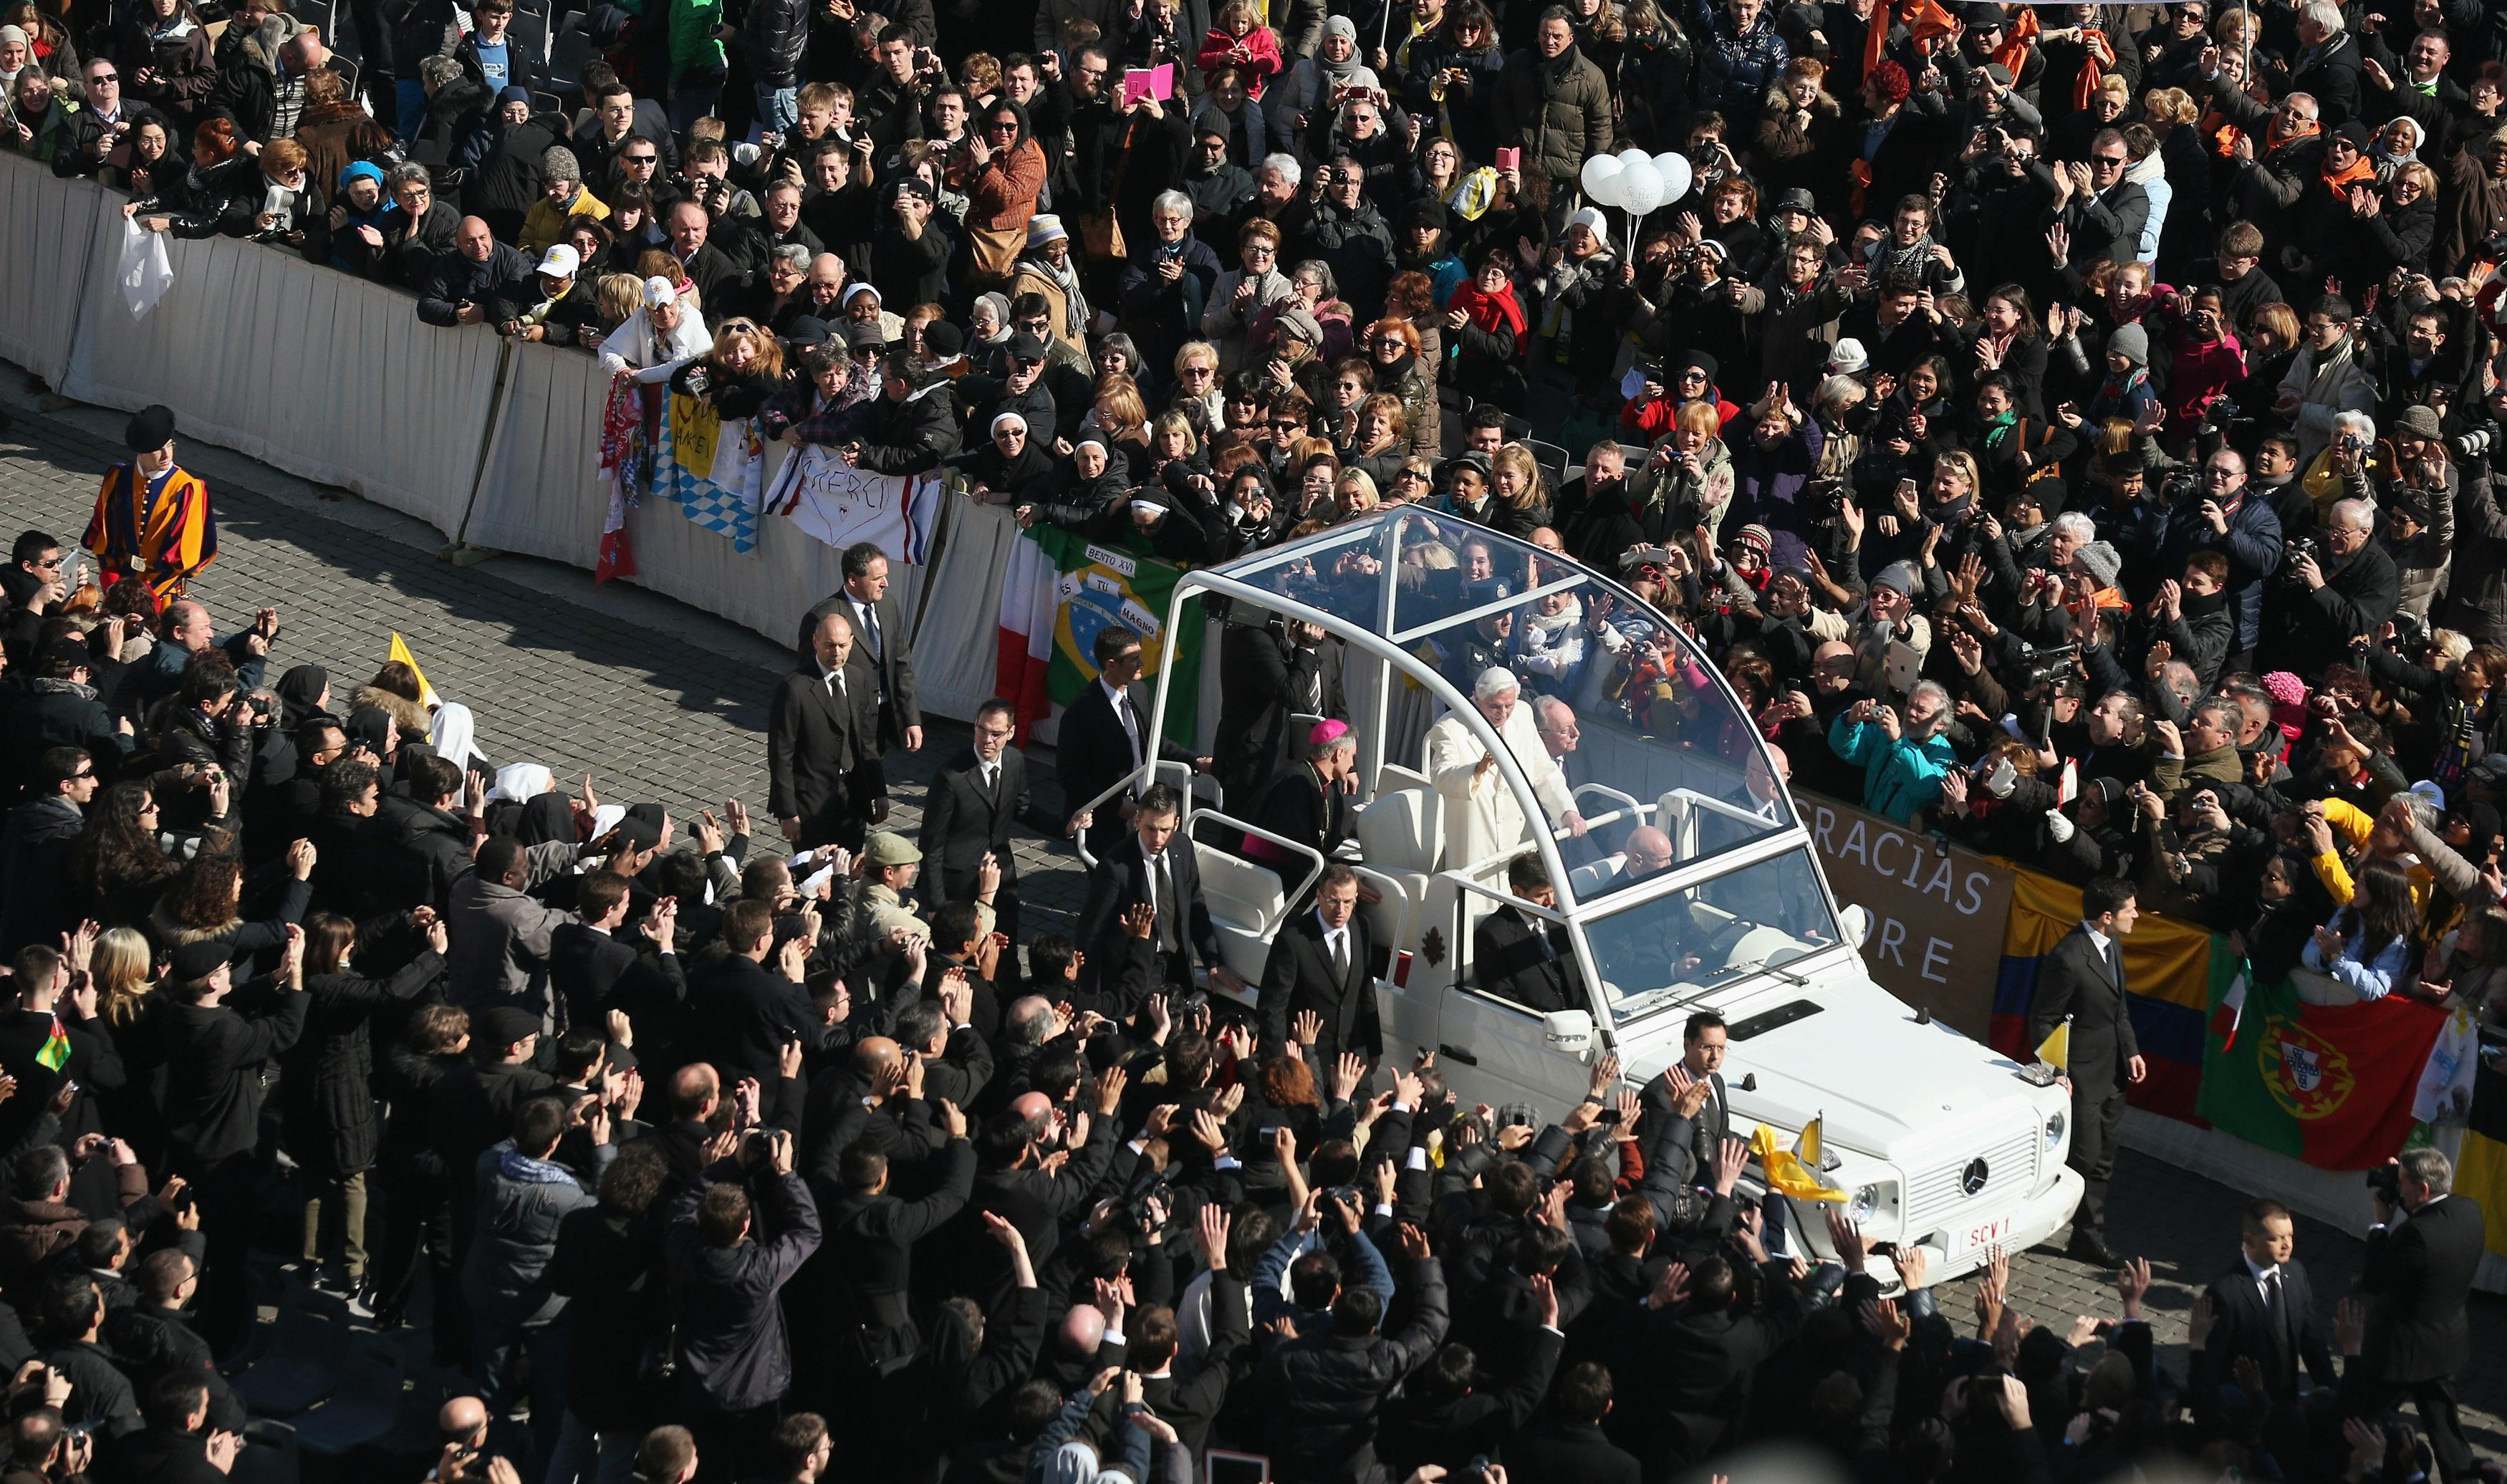 Pope Benedict XVI travels in the Popemobile through St. Peter's Square on Feb. 27, 2013, in Vatican City.